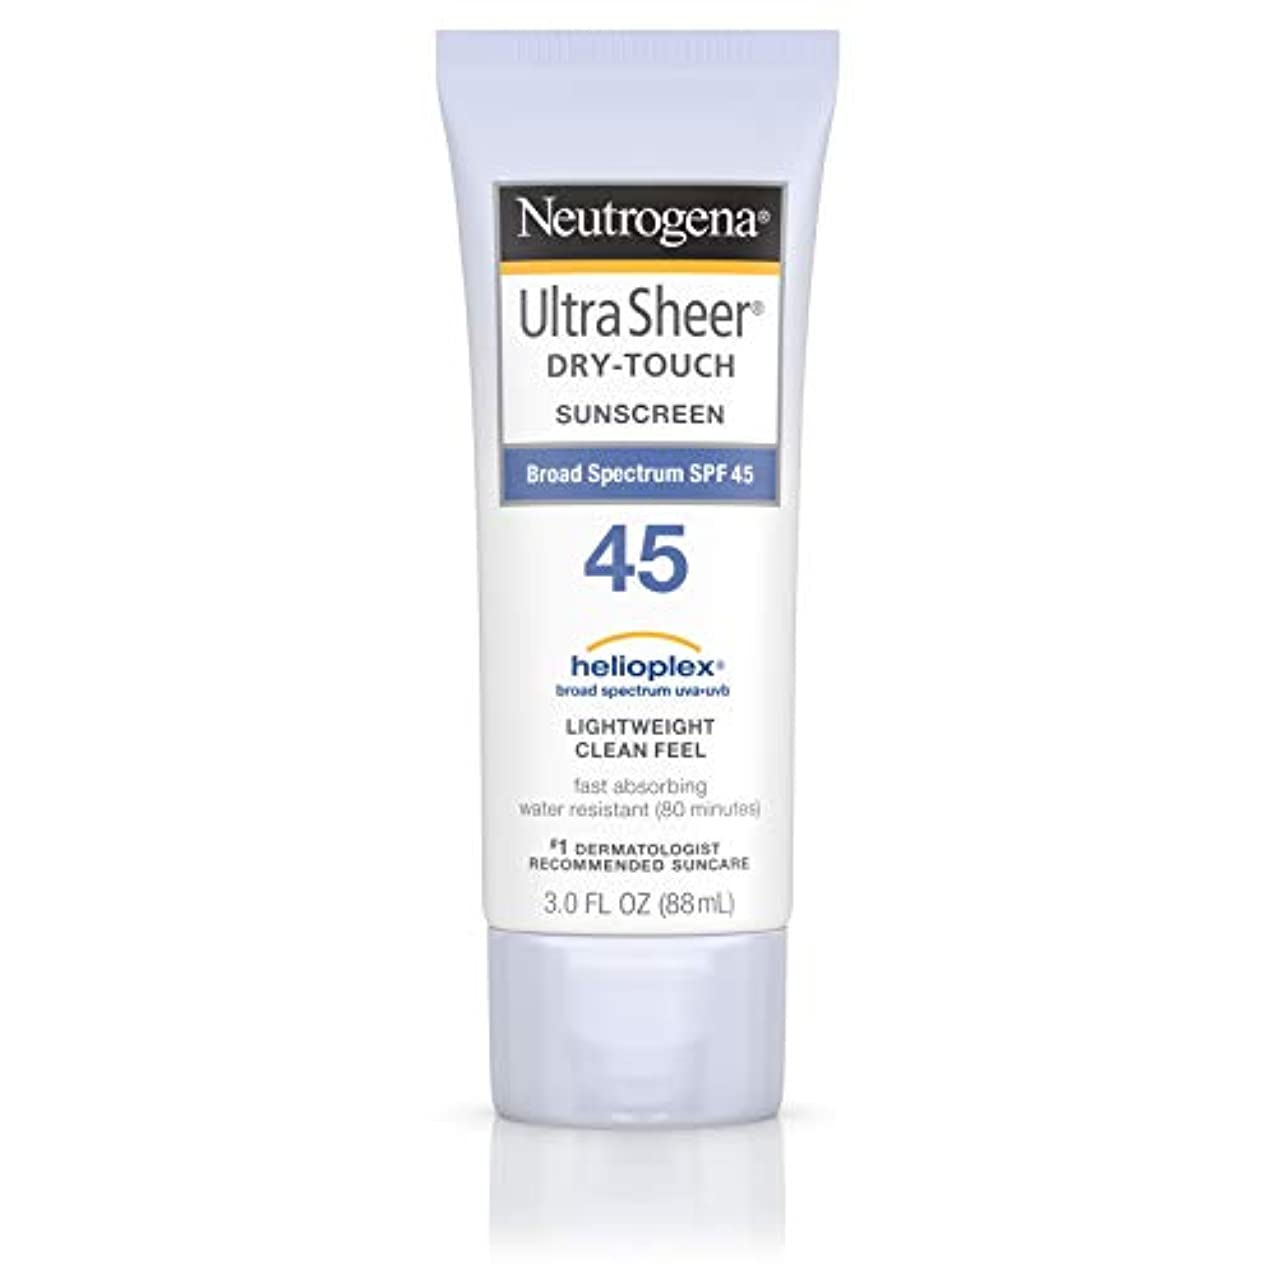 建物ローン頬骨海外直送品 Neutrogena Neutrogena Ultra Sheer Dry-Touch Sunblock Spf 45【並行輸入品】